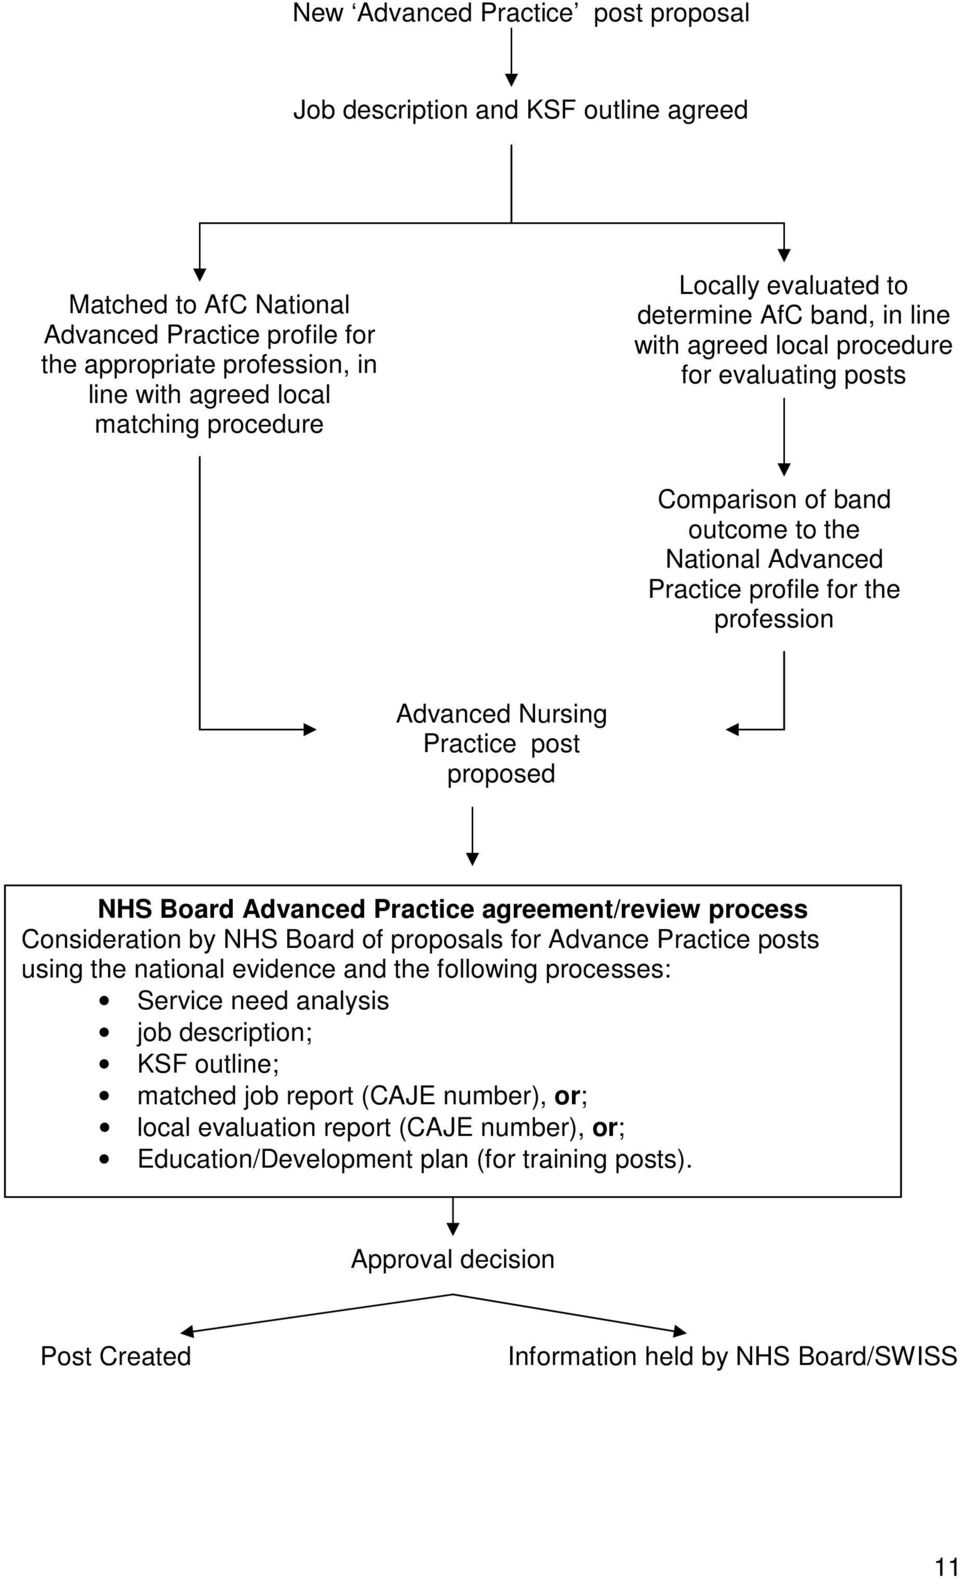 Advanced Nursing Practice post proposed NHS Board Advanced Practice agreement/review process Consideration by NHS Board of proposals for Advance Practice posts using the national evidence and the